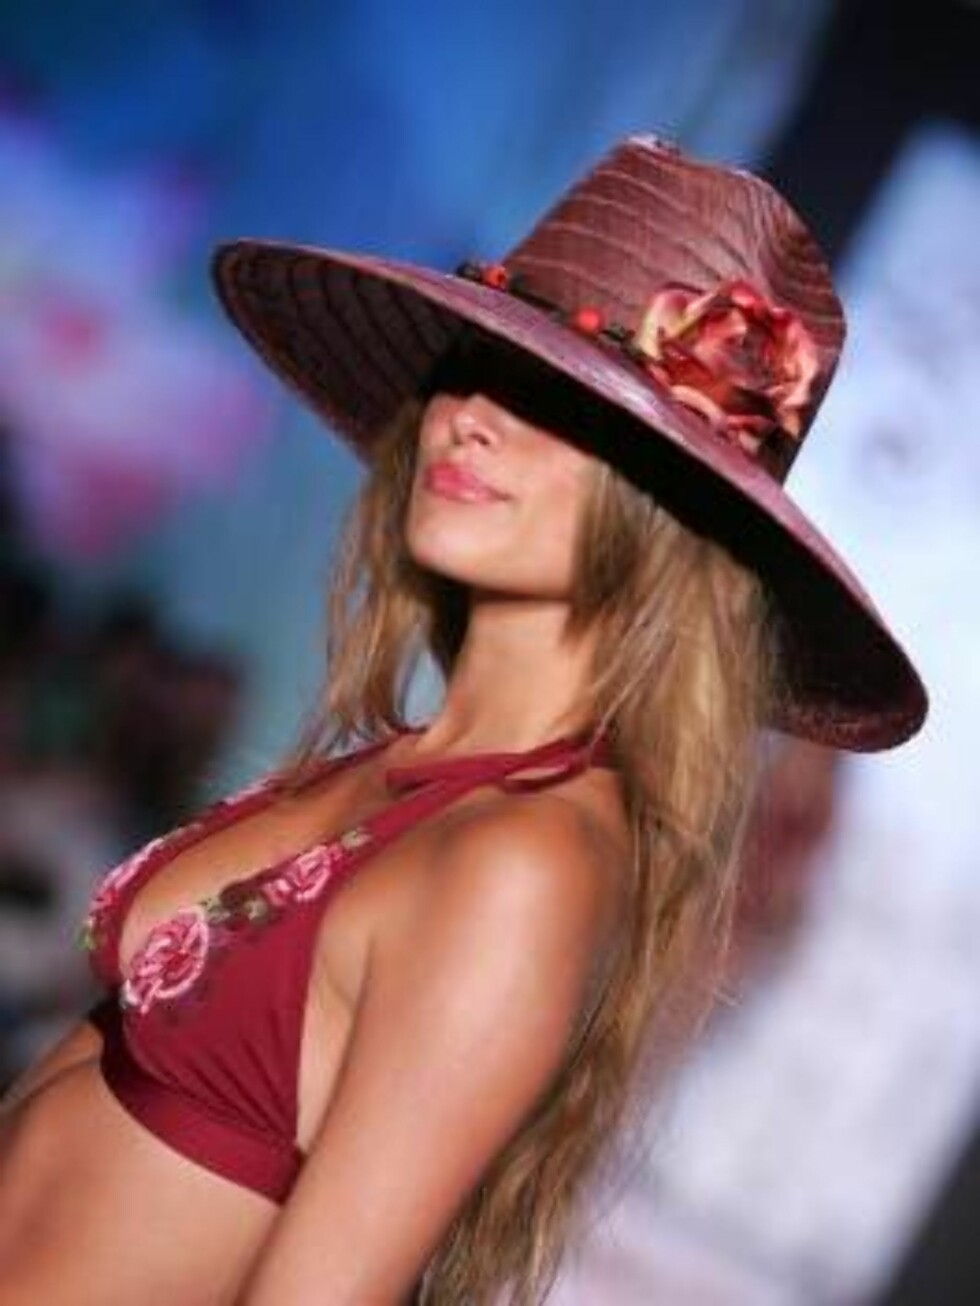 <strong>MIAMI - JULY 17:</strong>  A model walks the runway at the Becca Summer 2007 fashion show during the Sunglass Hut Swim Shows Miami in the The Beachway tent at the Raleigh Hotel on July 17, 2006 in Miami, Florida.  (Photo by Carlo Allegri/Getty Images for IMG)  * S Foto: All Over Press